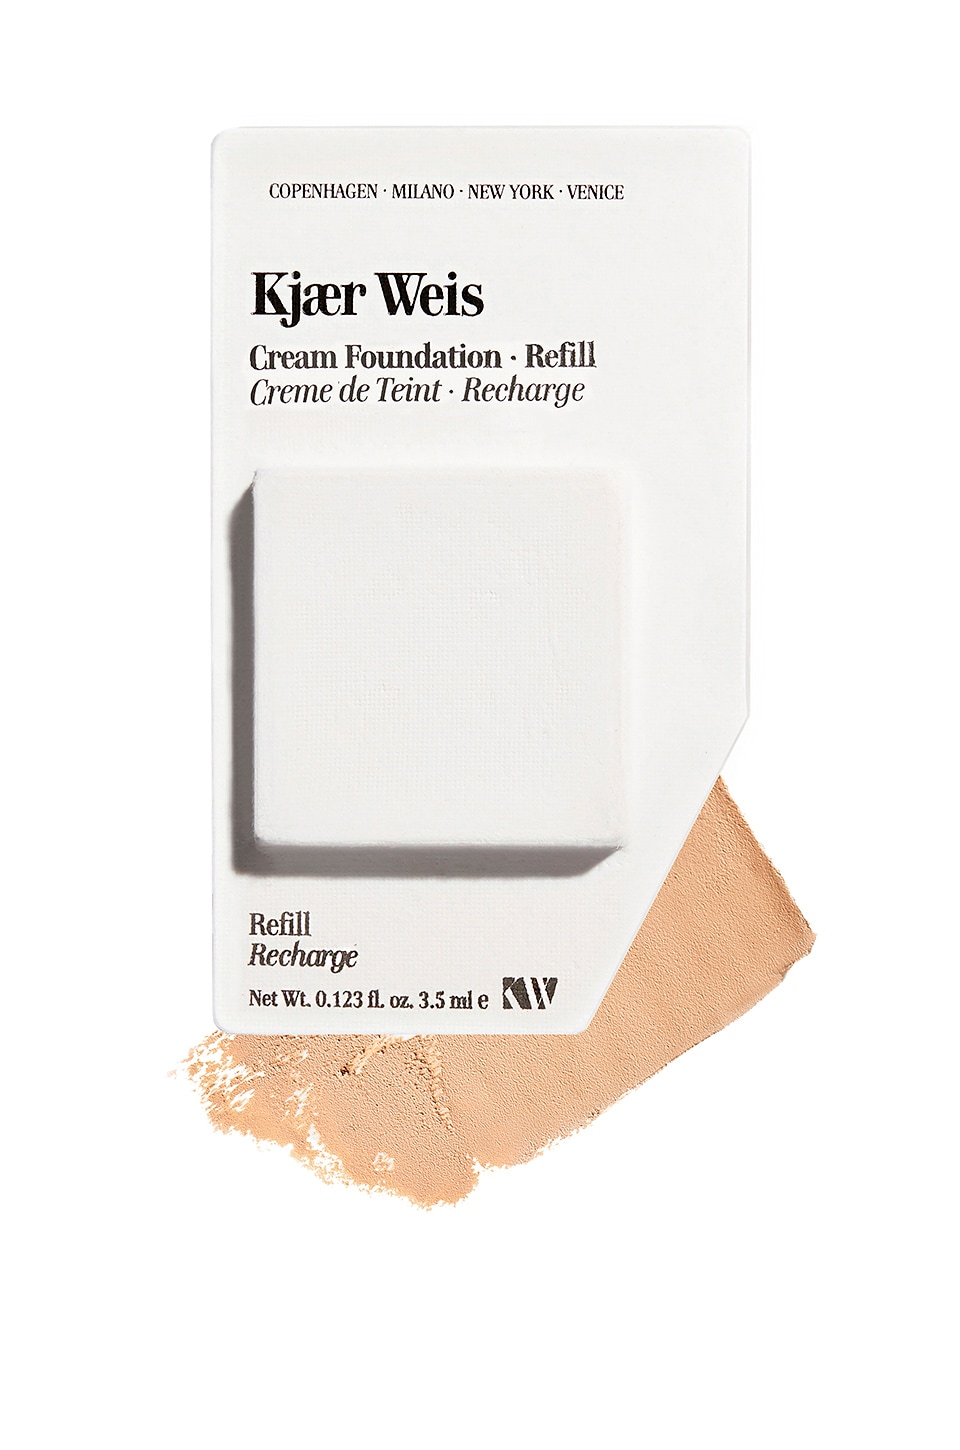 Kjaer Weis Cream Foundation Refill in Ethereal